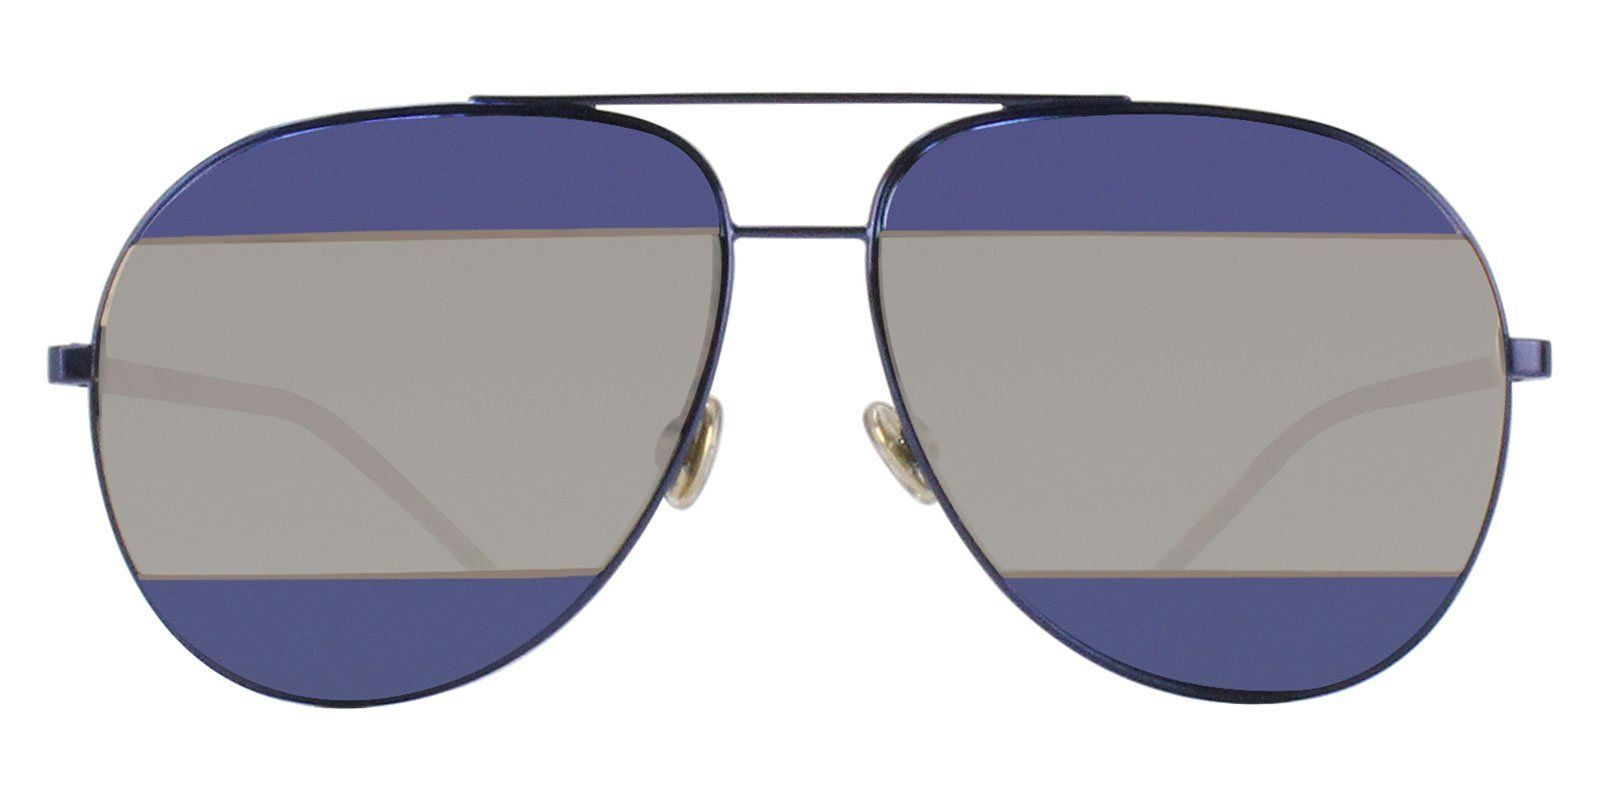 5952a2a7680 Dior - Split1 Blue - Gray sunglasses